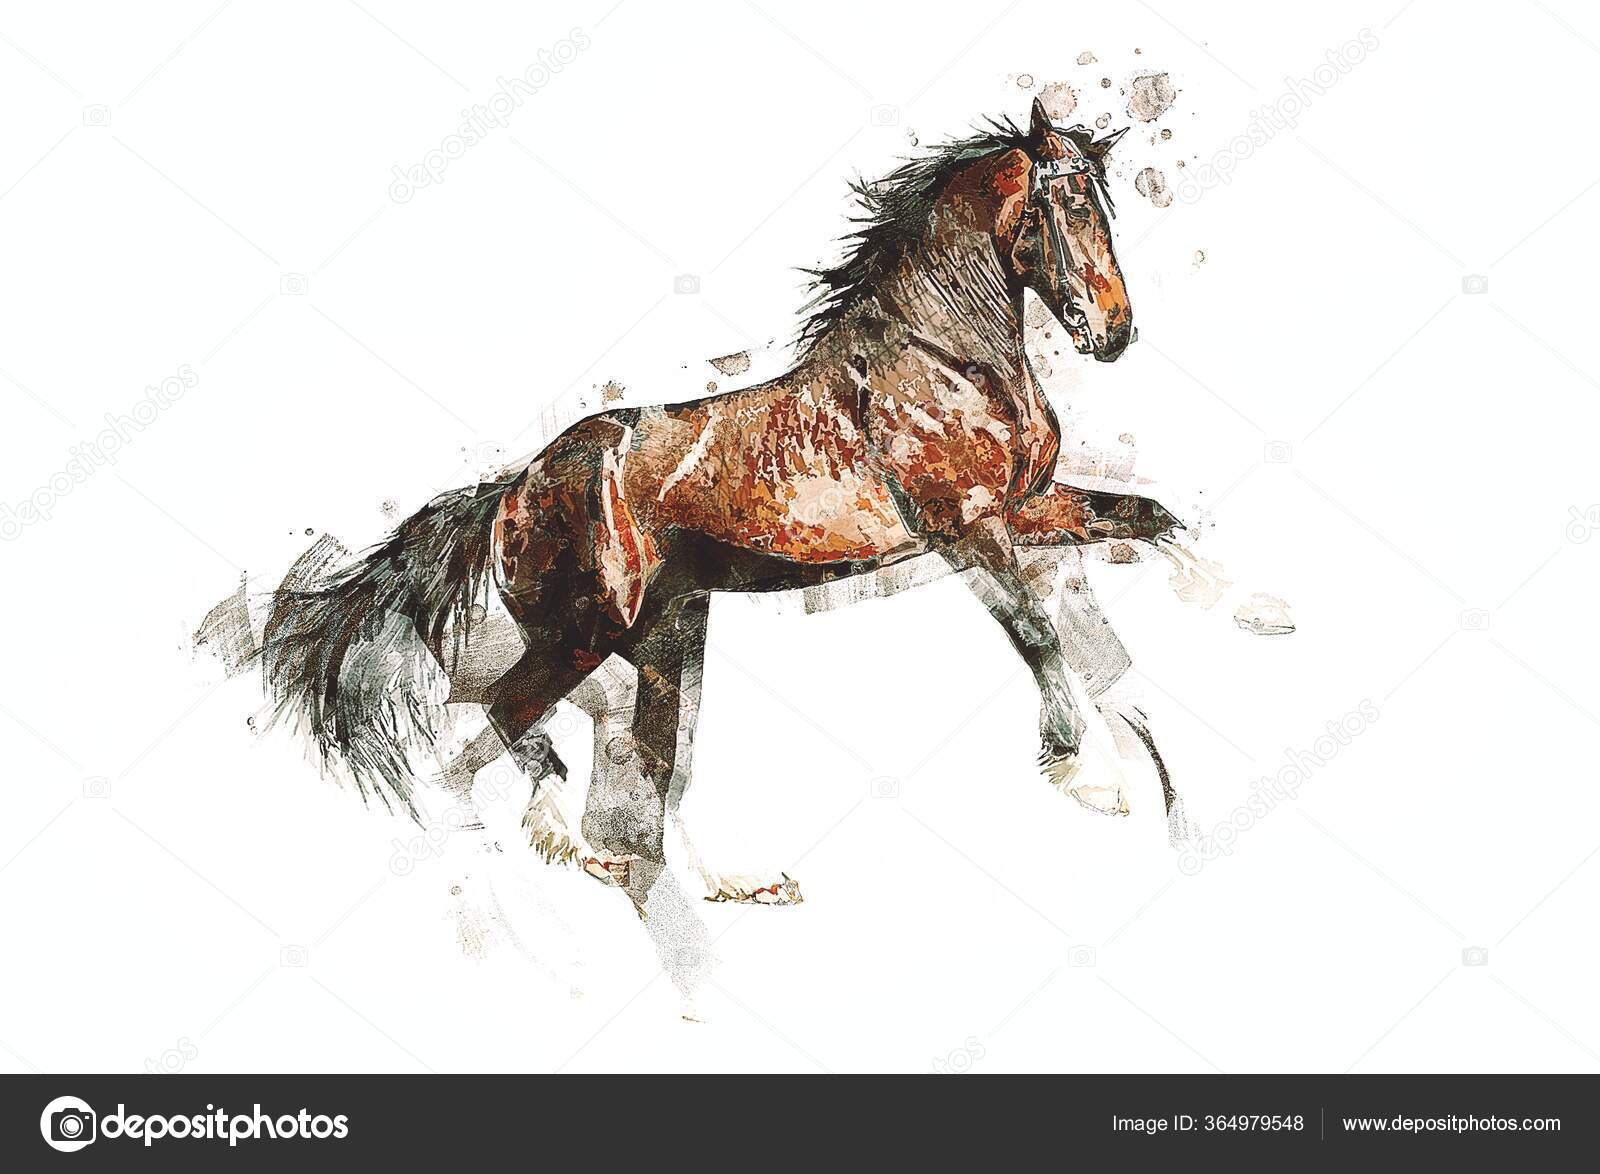 Colorful Horse Art Illustration Grunge Painting Stock Photo C Maxtor7777 364979548